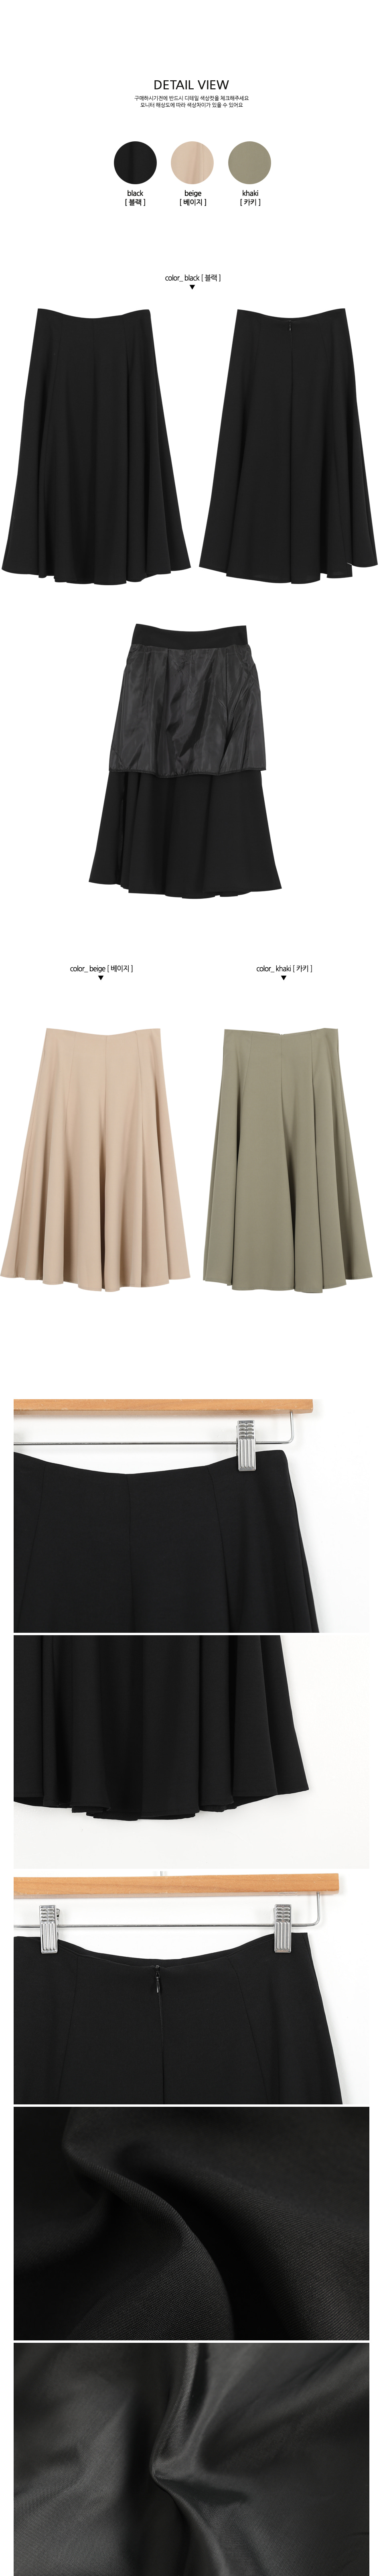 L-section flared skirt